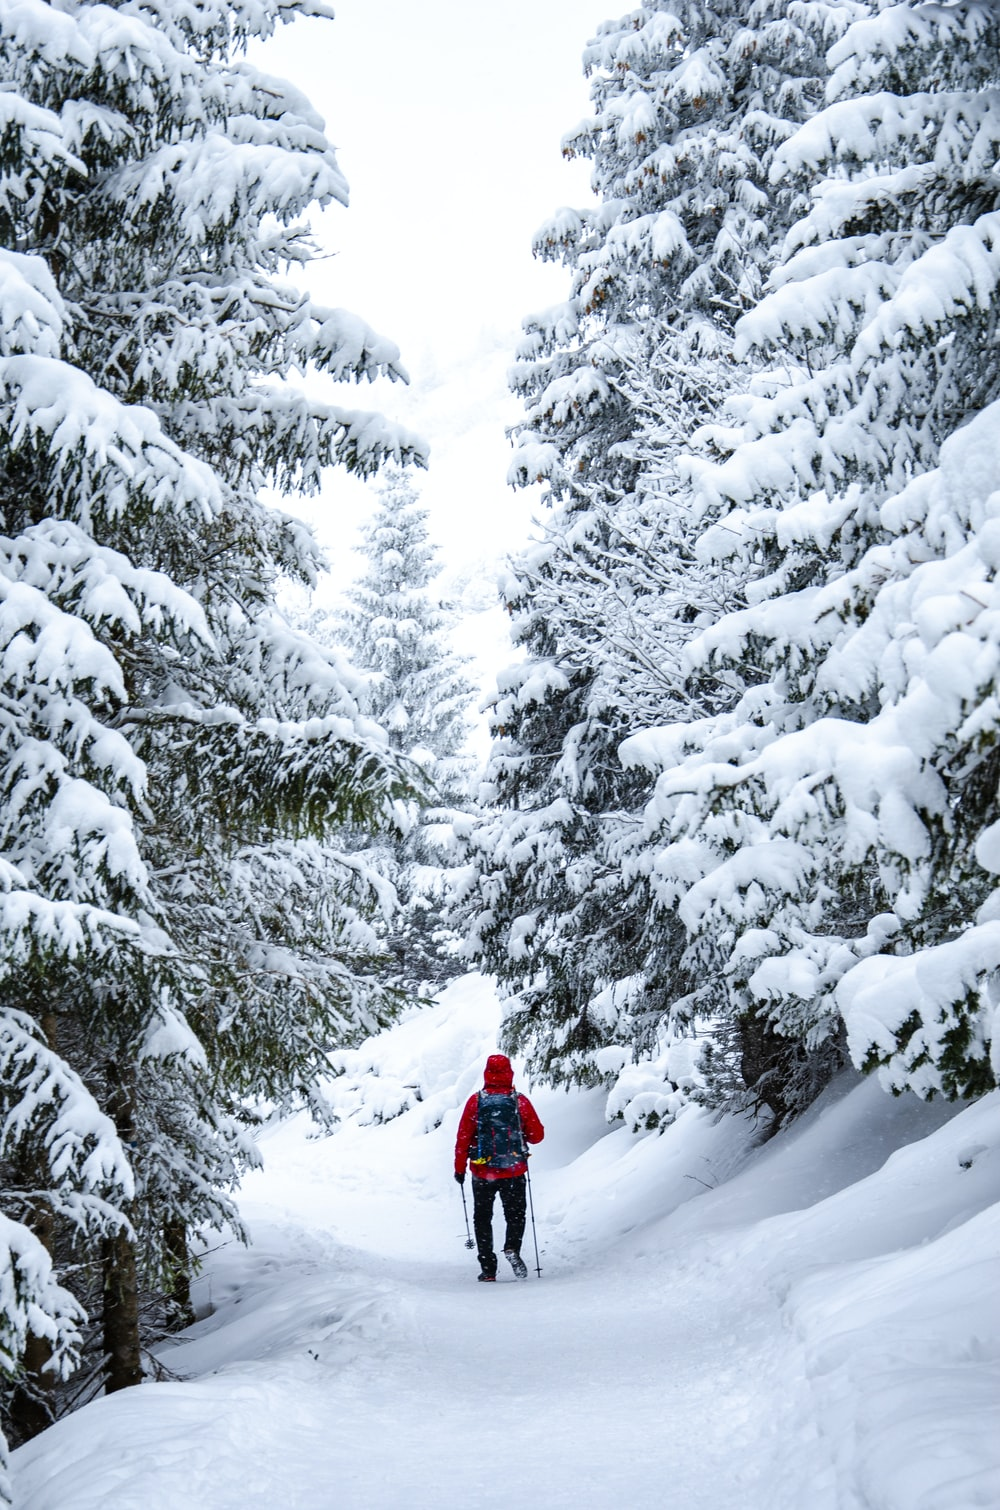 person in red jacket and black pants standing on snow covered ground near trees during daytime